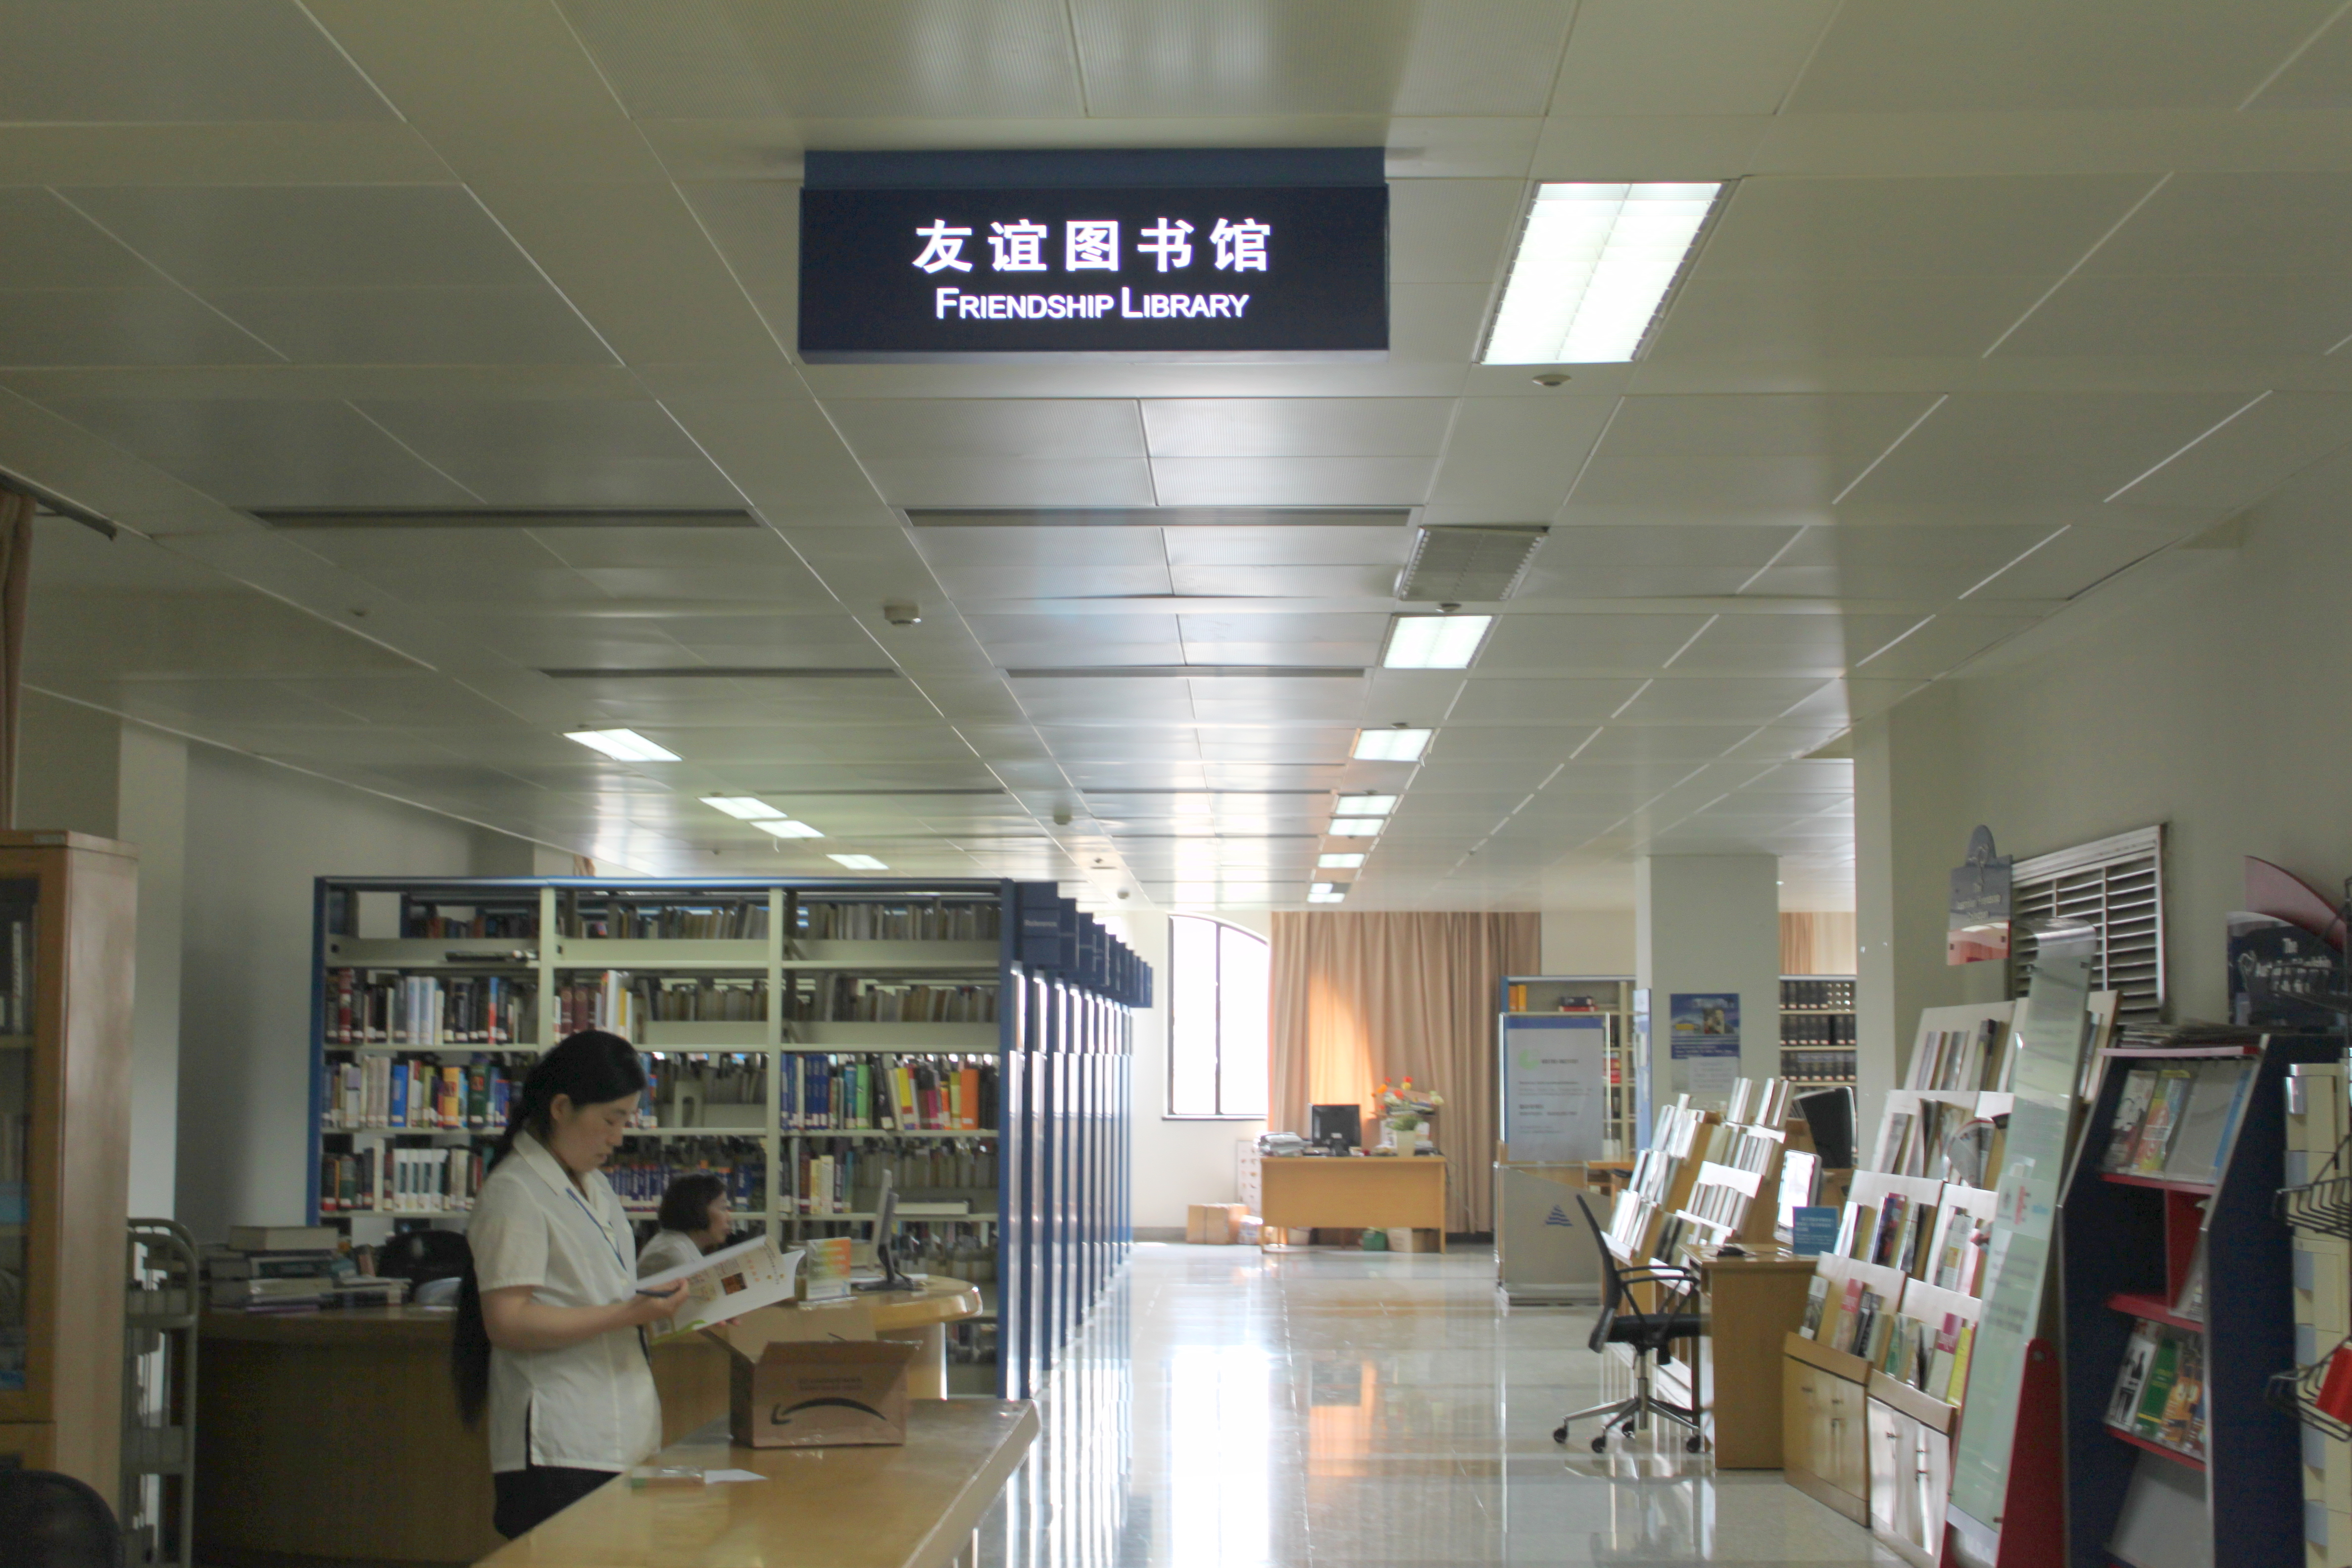 Friendship Library